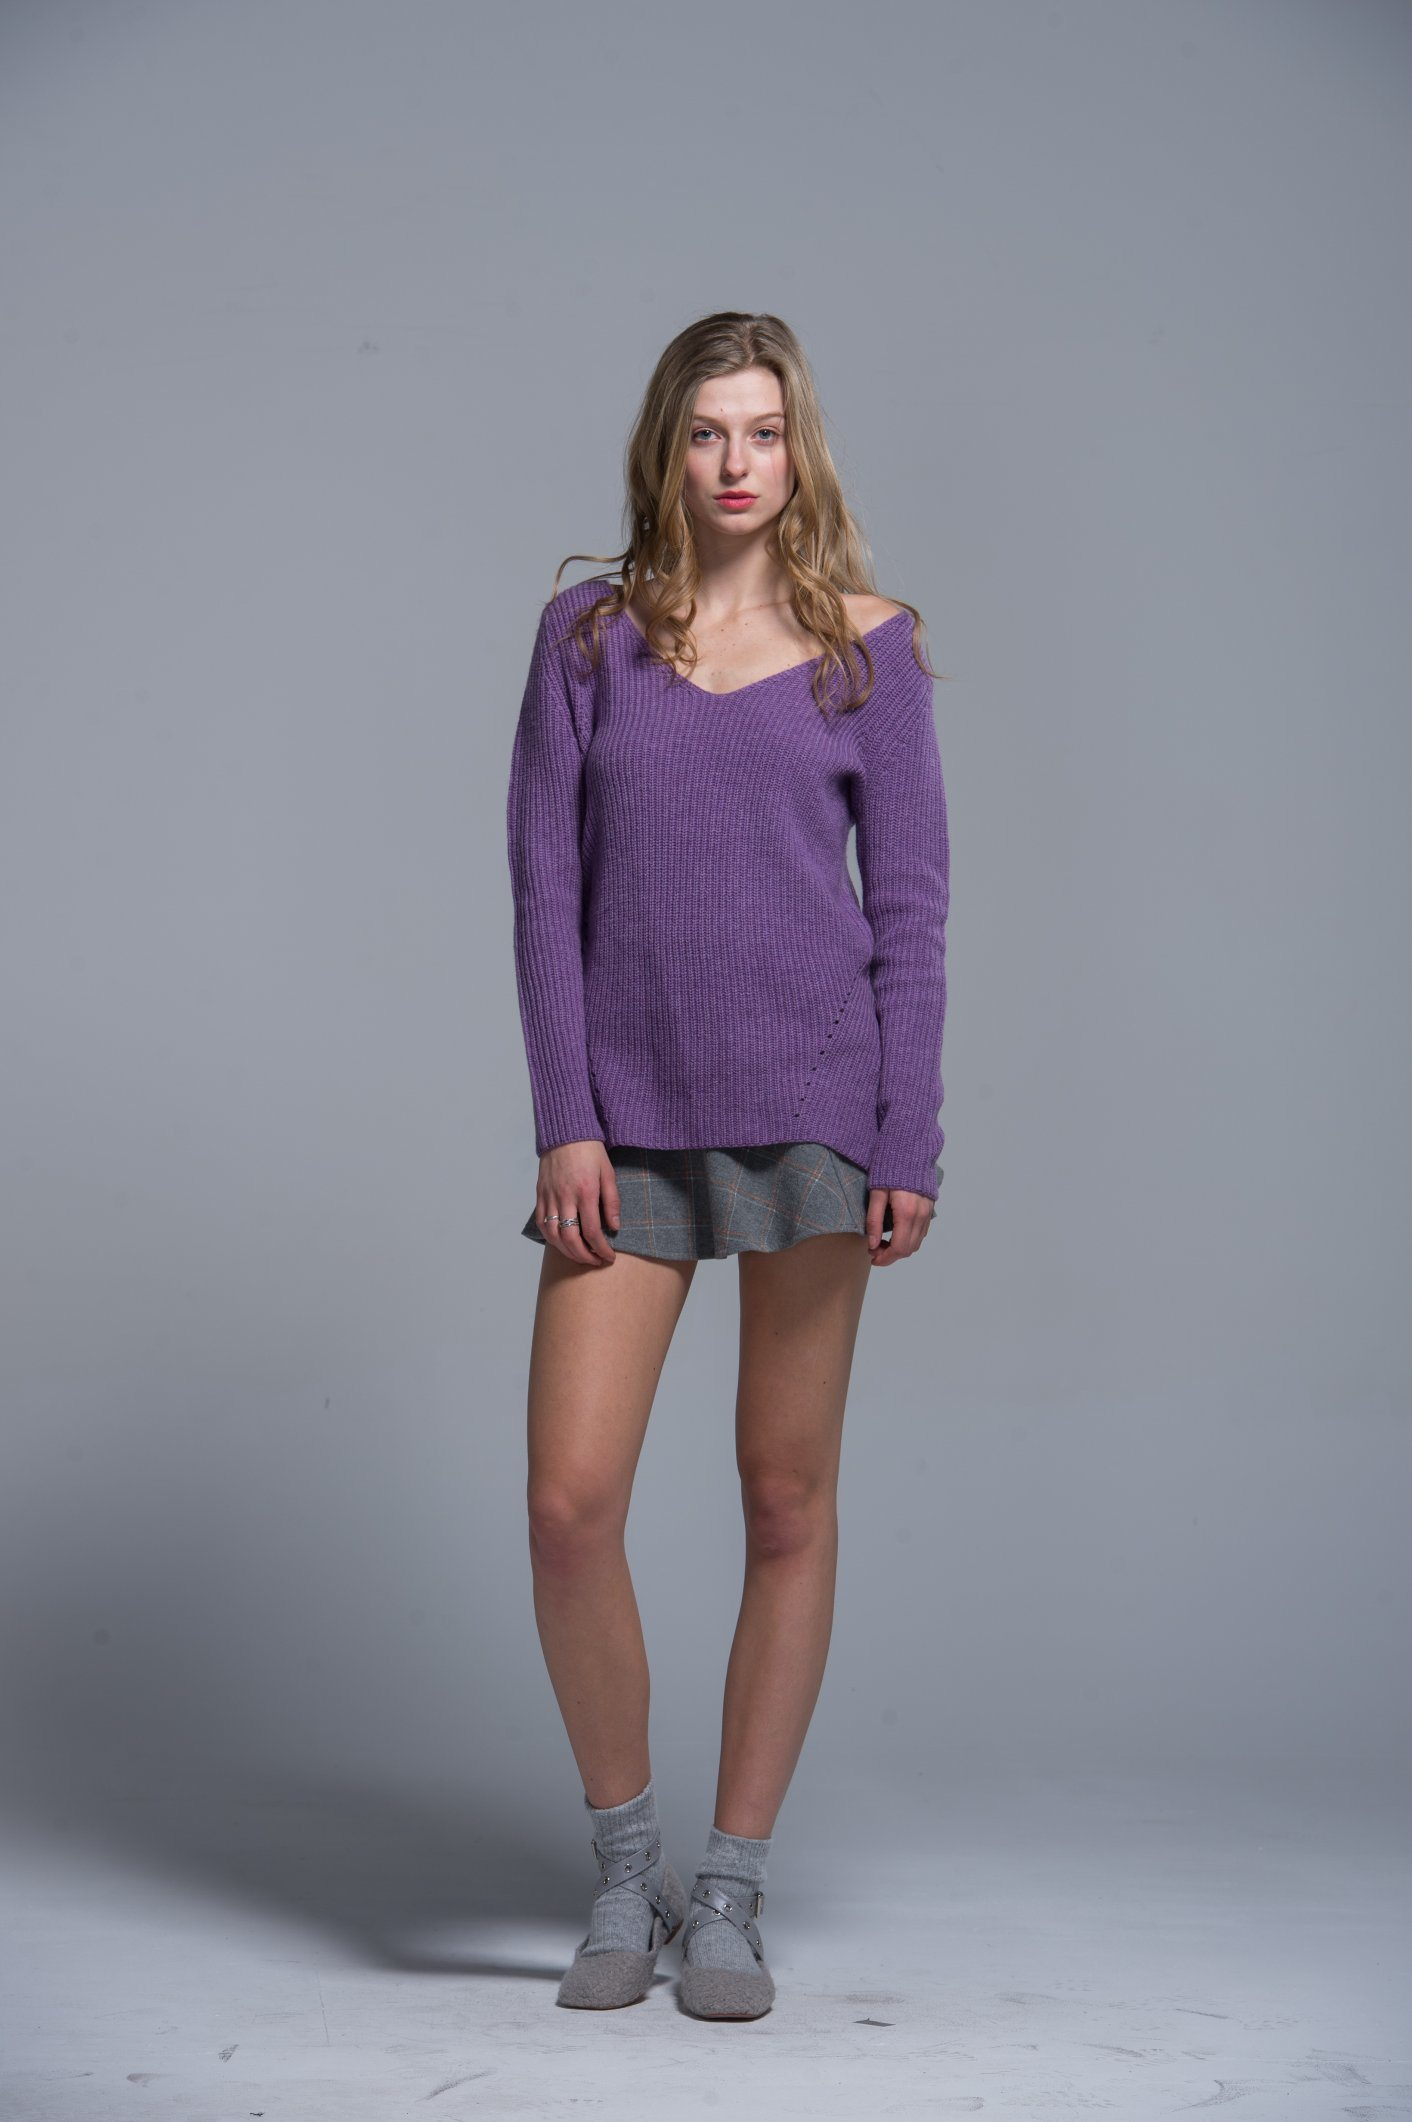 Ladies 100% Cotton Plain Color Fashionable Sweaters Standard Sizes